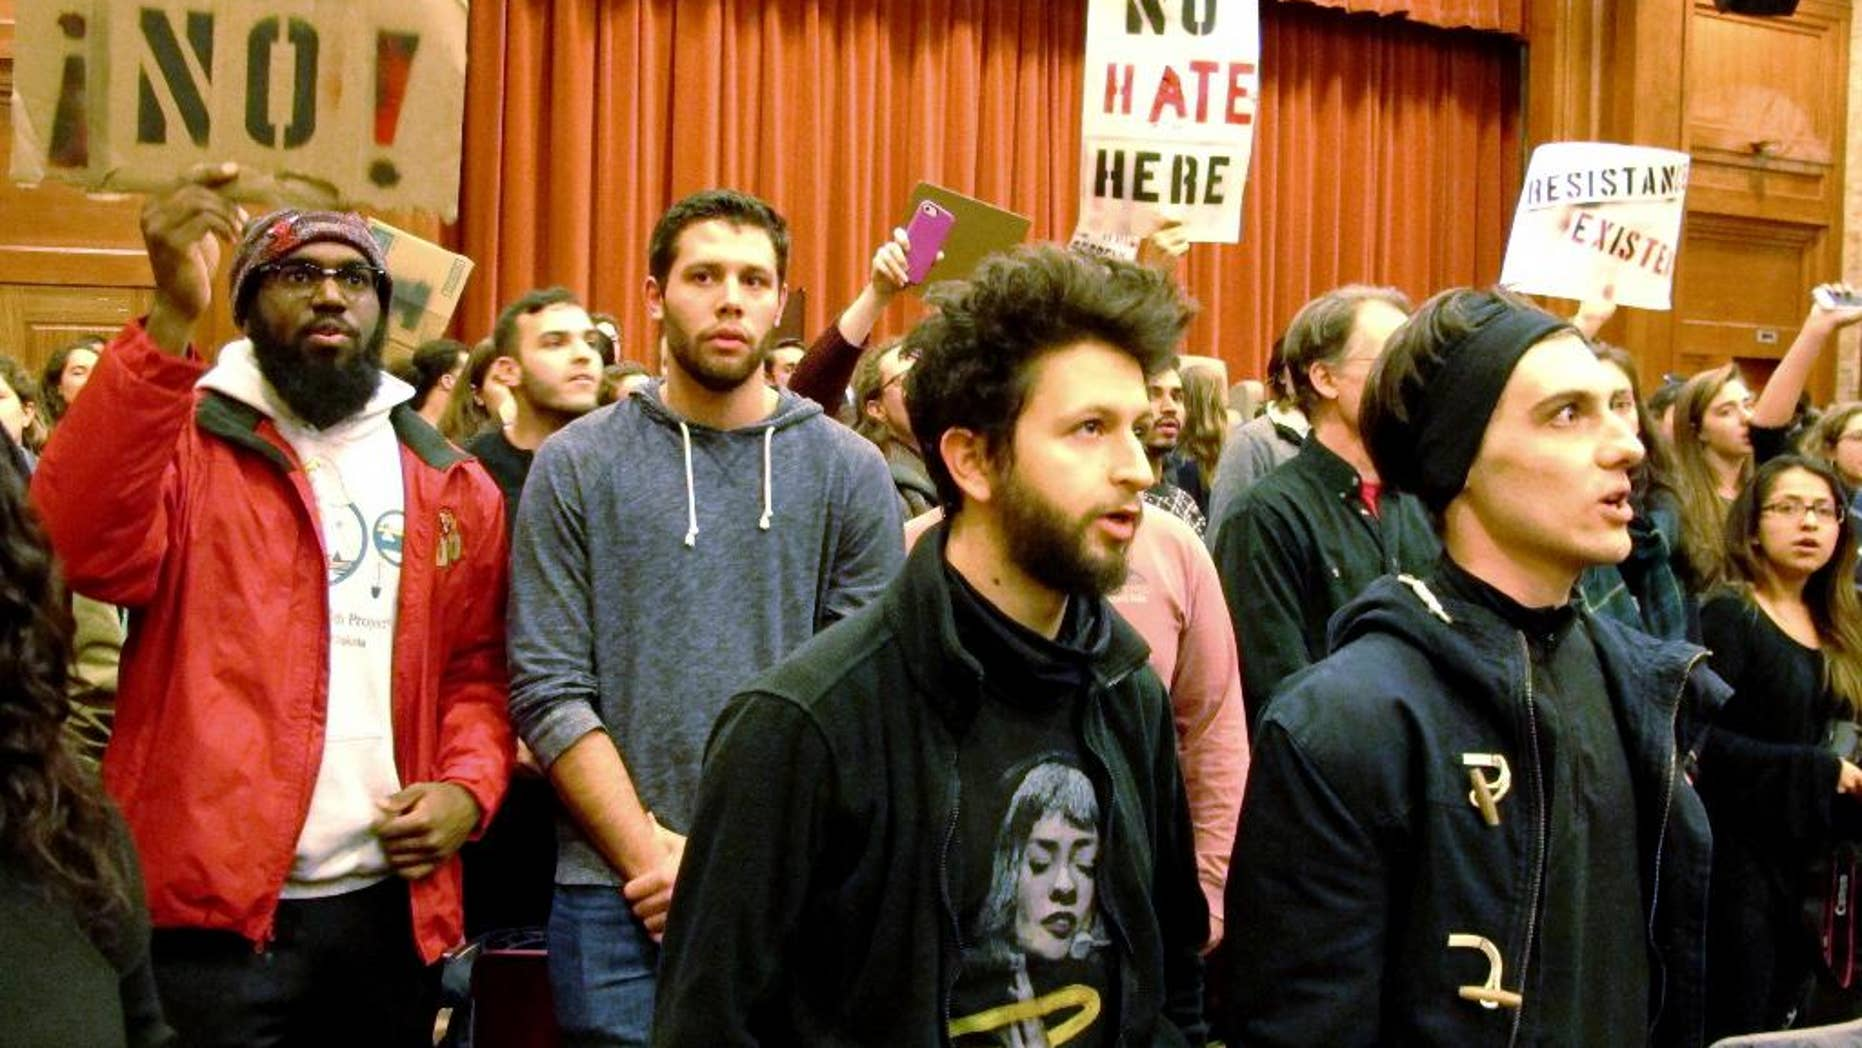 File-This March 2, 2017, file photo shows Middlebury College students turning their backs to Charles Murray, unseen, during his lecture in Middlebury, Vt. Up to 70 students face disciplinary measures over the protest of author Charles Murray, who spoke at Middlebury College in March. A professor was injured in a melee afterward.  (AP Photo/Lisa Rathke, File)